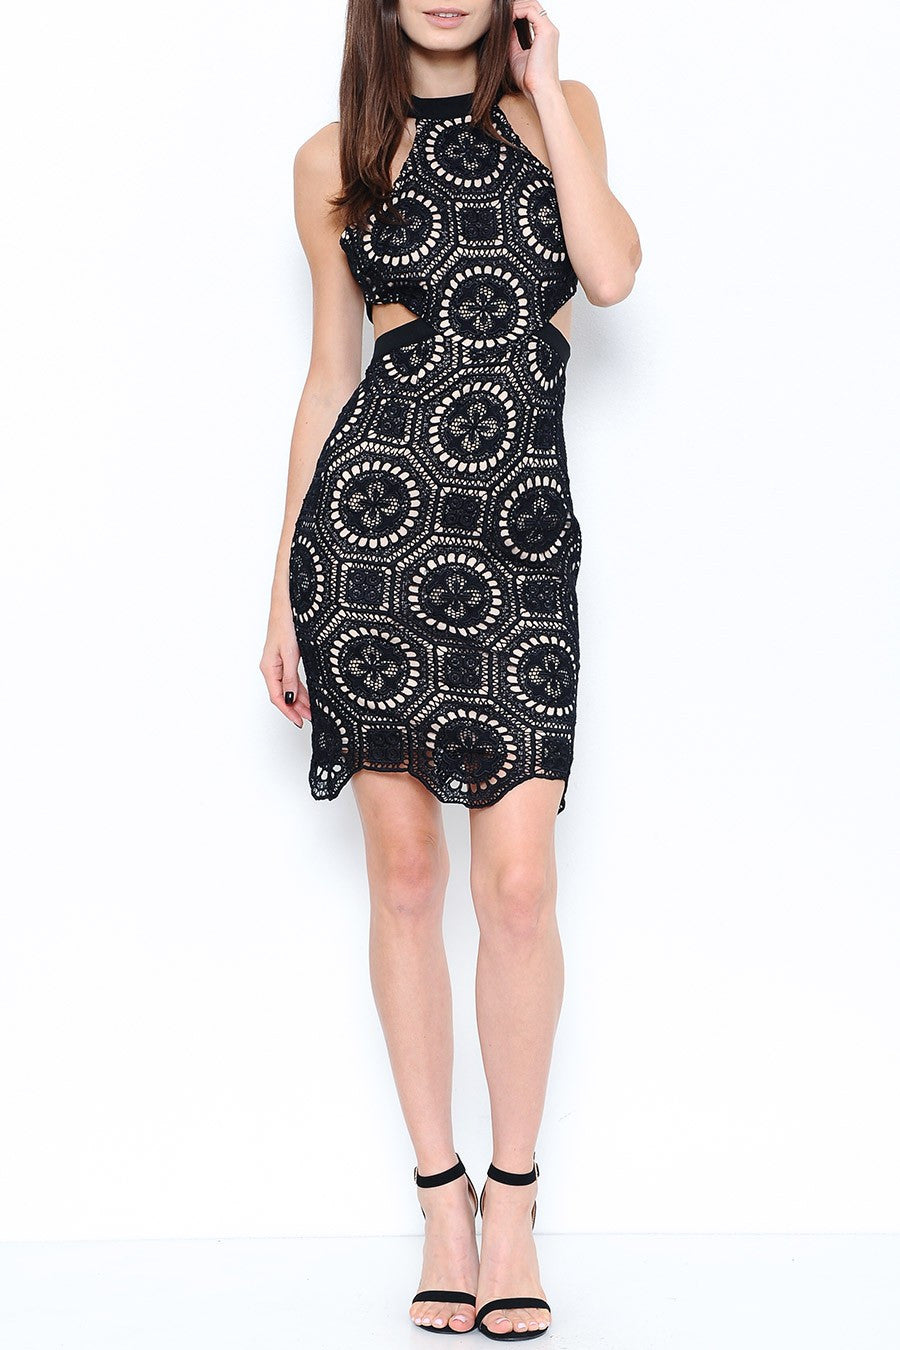 Cruz Crochet Cocktail Dress